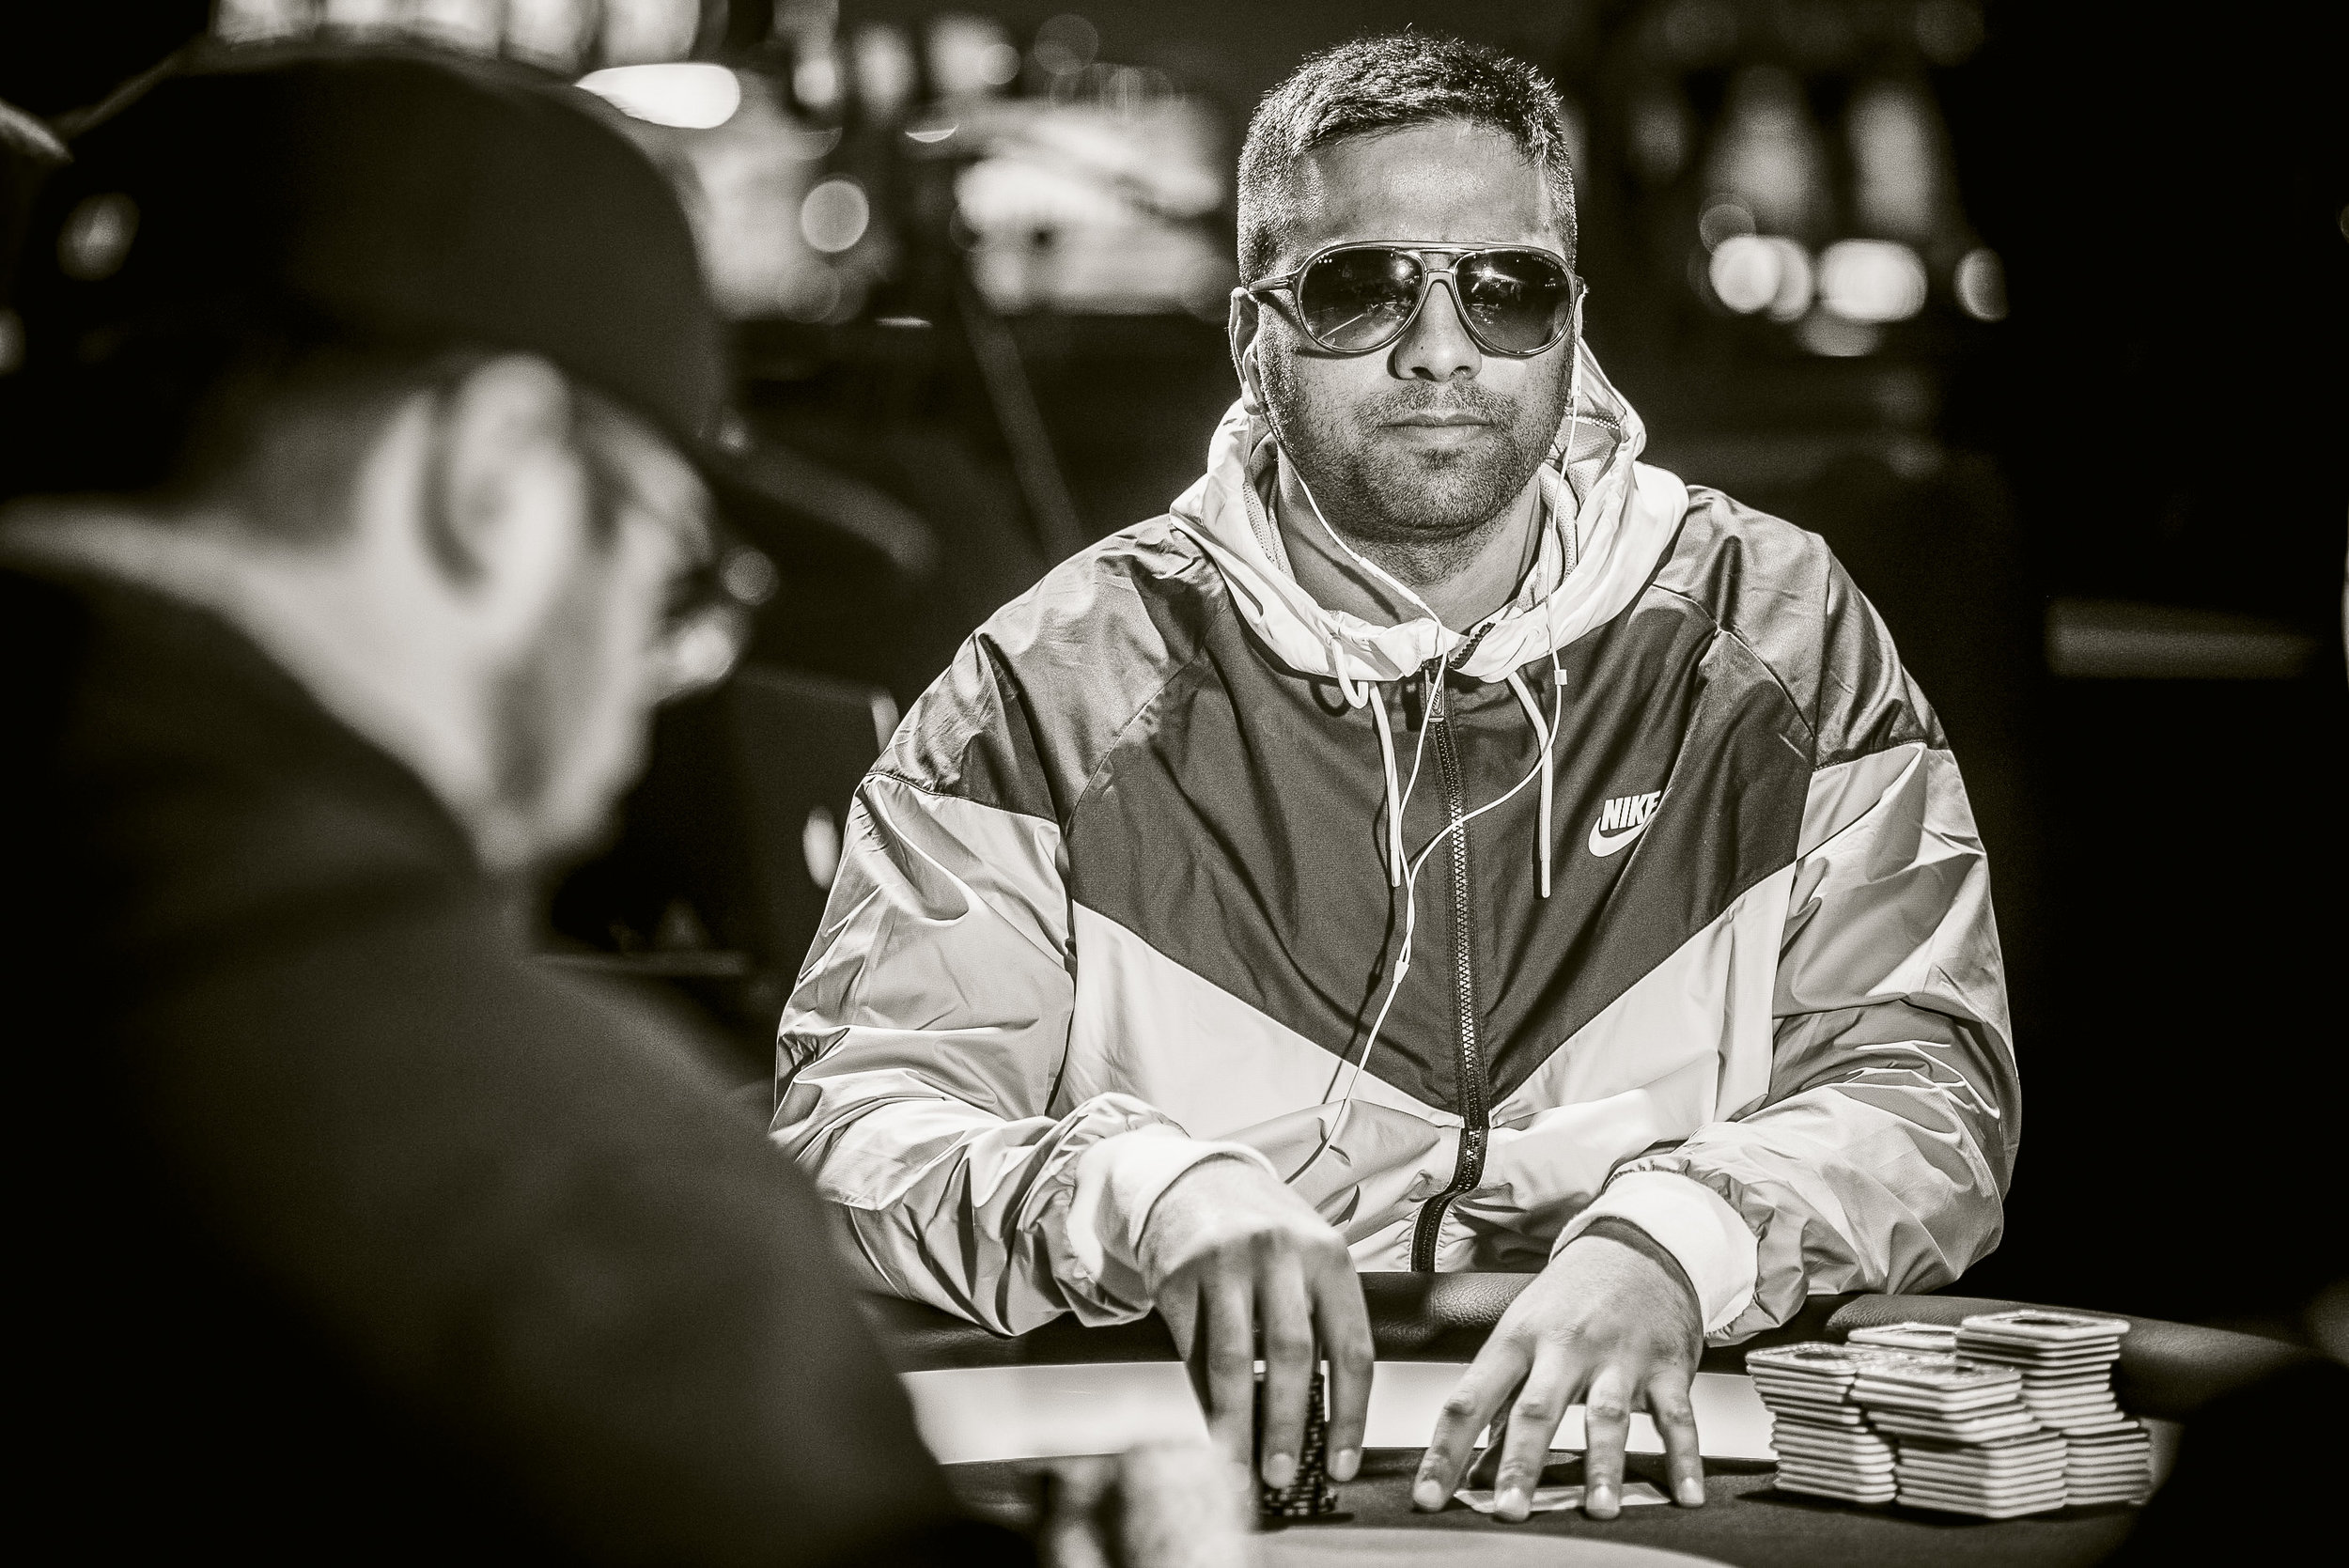 DeepStacks Poker Tour_Amardeep Randhawa_Amato_AA42952.jpg